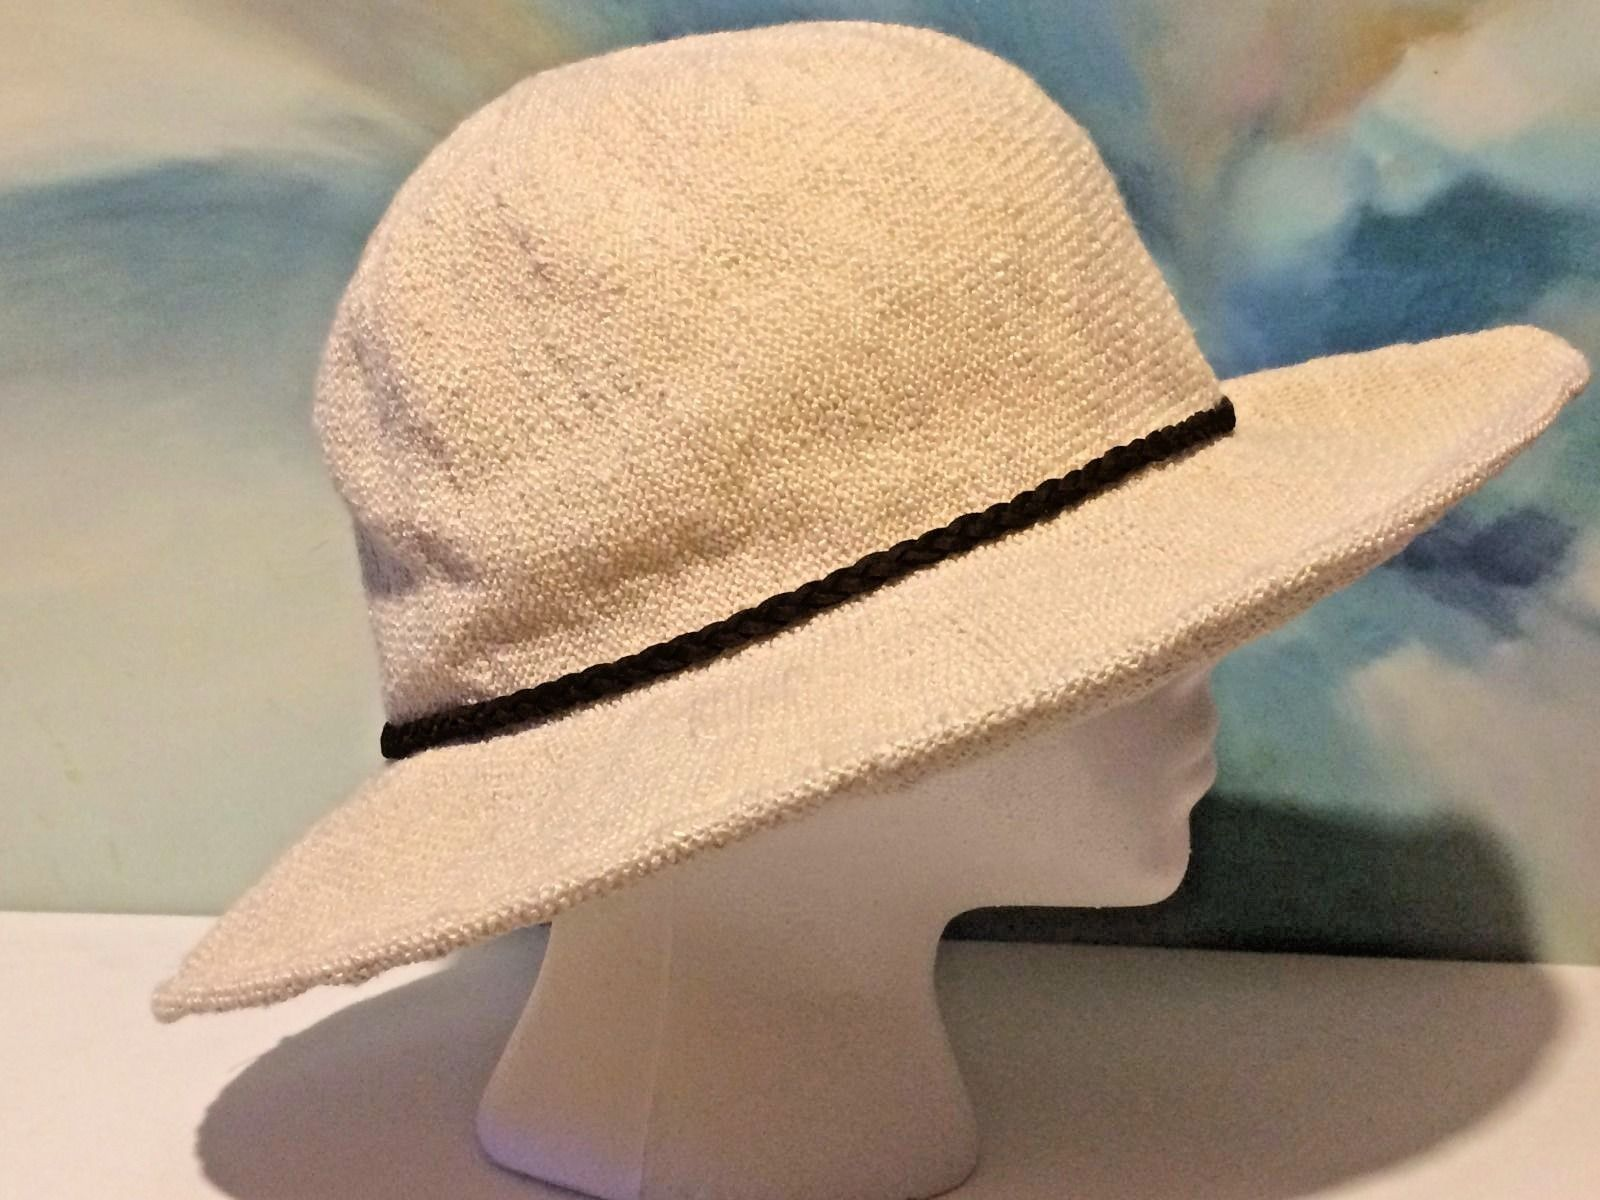 5b70c60a6d3 Forever 21 Women hat NWT Floppy wide brim and 50 similar items. S l1600